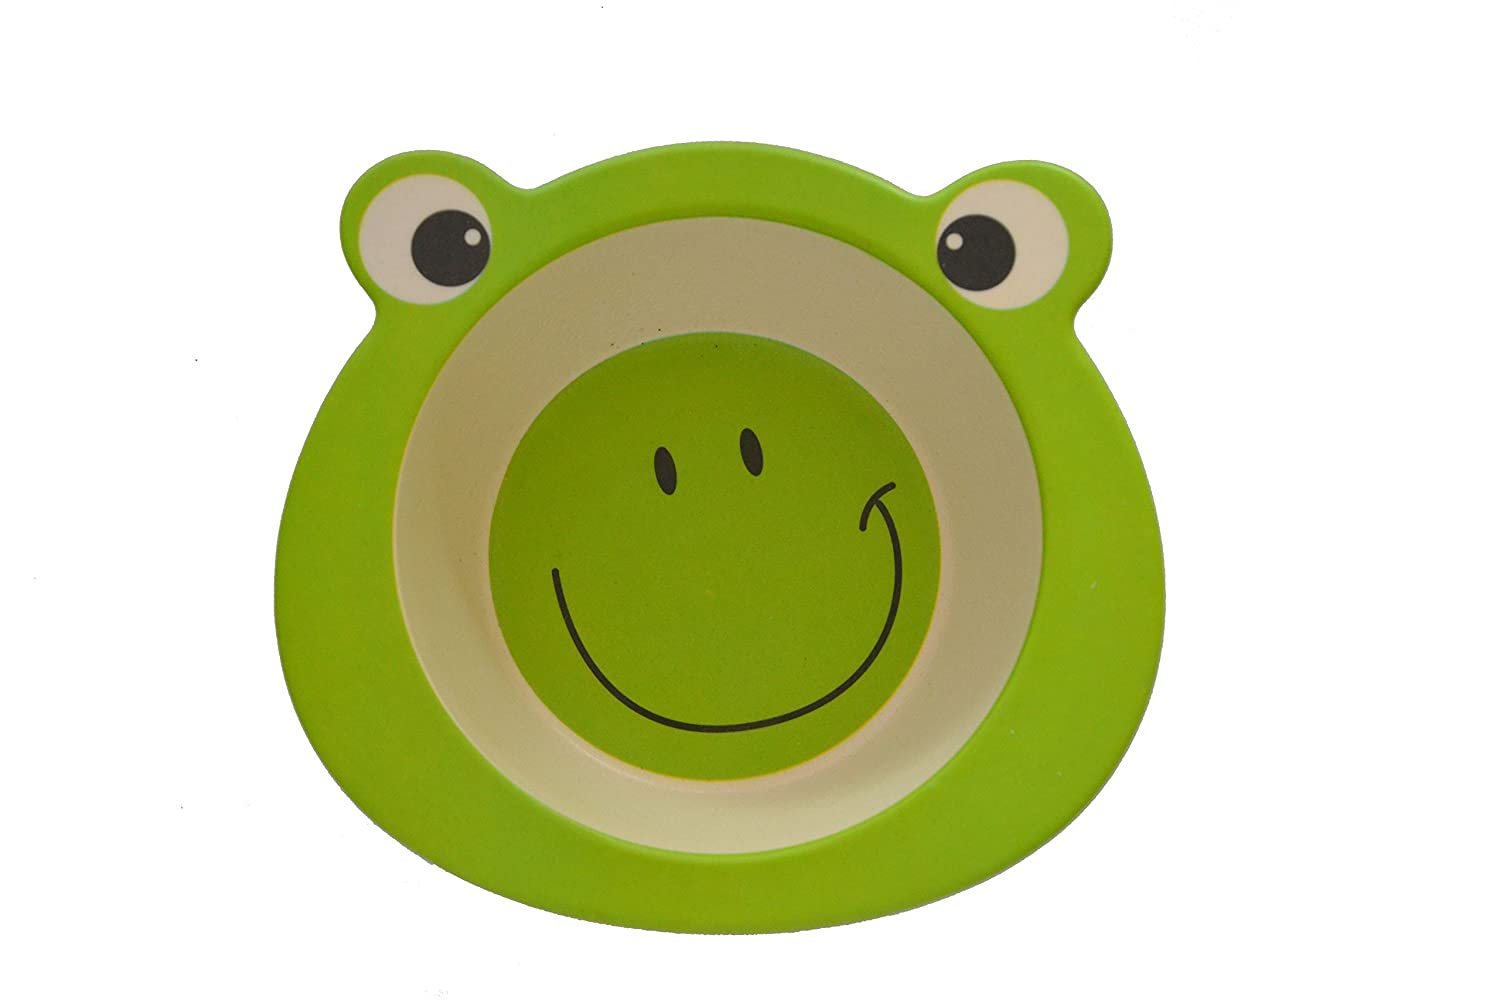 Baby, Toddler, Kids Bowl Frog Design | Tableware | Dinner | Mealtime | Weaning | Eco-Friendly by Mini Mumbler®